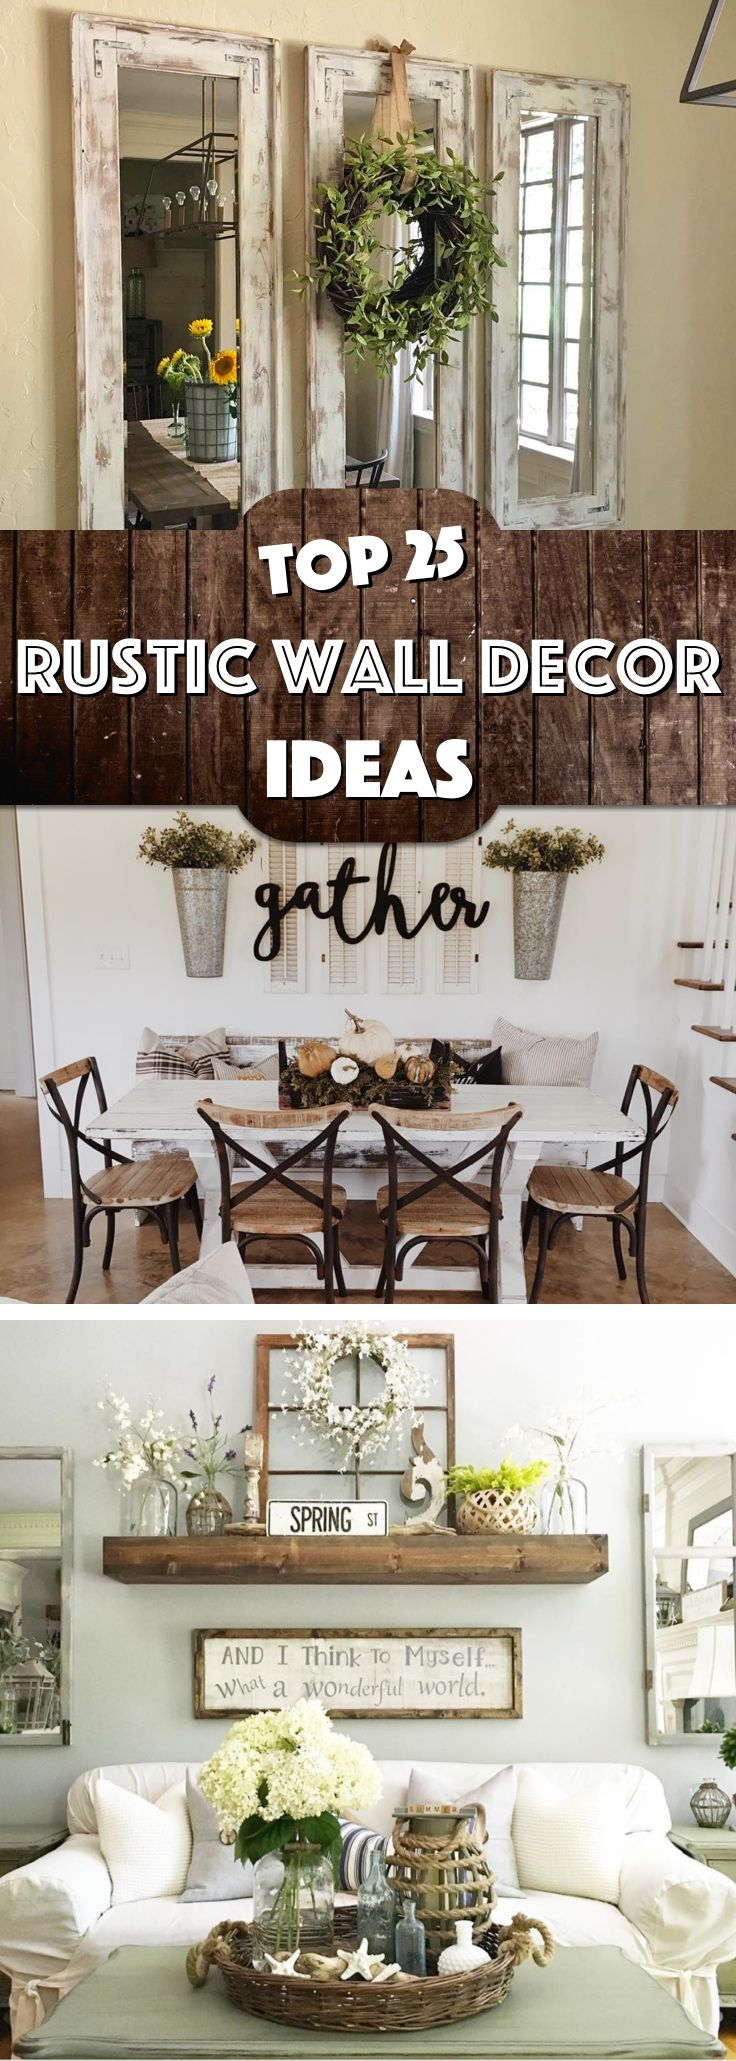 25 Must Try Rustic Wall Decor Ideas Featuring The Most Amazing Intended Imperfections Cute Diy Projects Easy Home Decor Home Decor Farm House Living Room